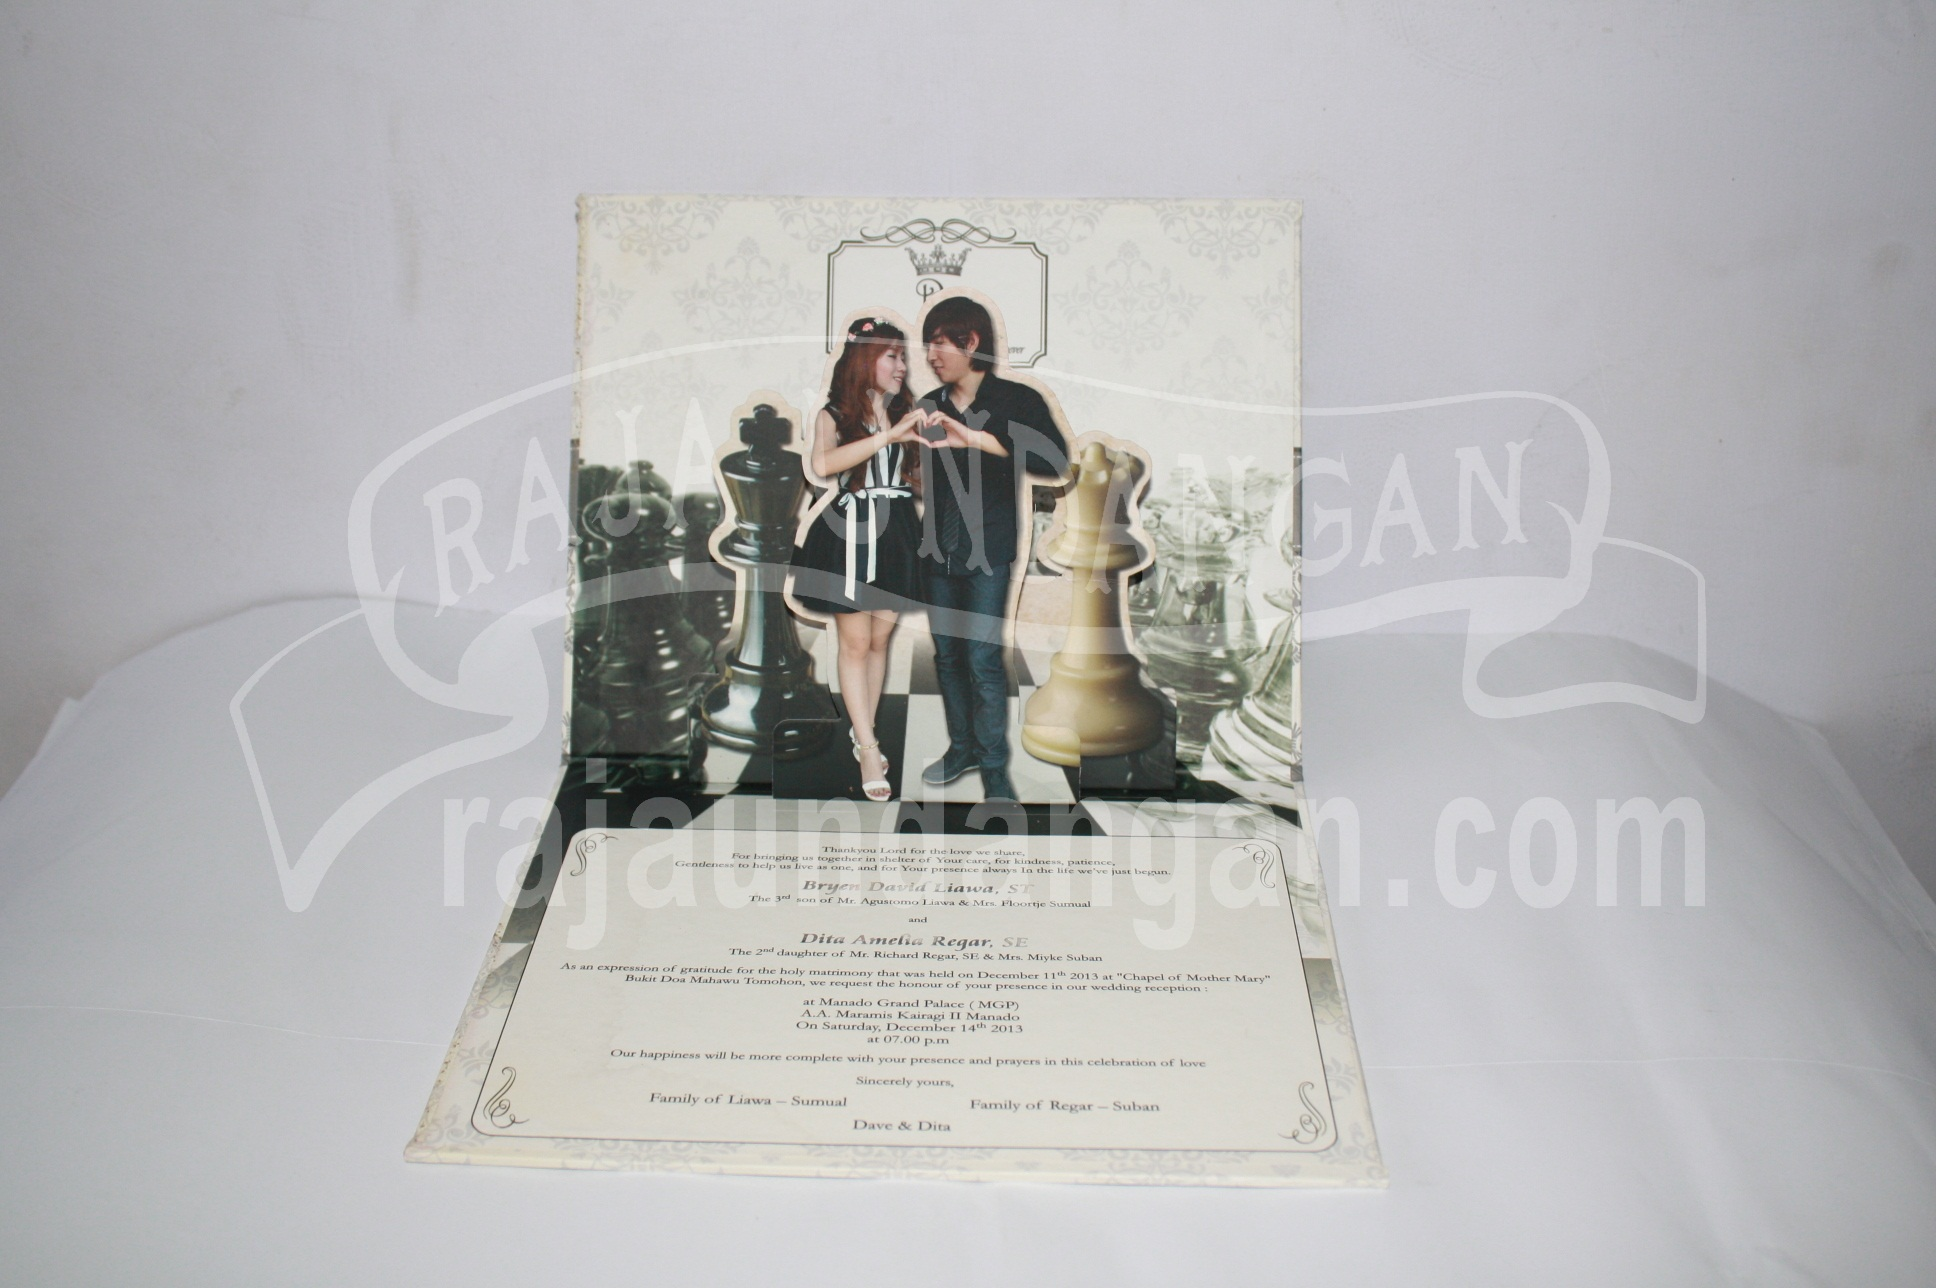 Undangan Pernikahan Hardcover Pop Up Dave dan Dita EDC 39 1 - Cetak Wedding Invitations Unik di Babakan Jerawat